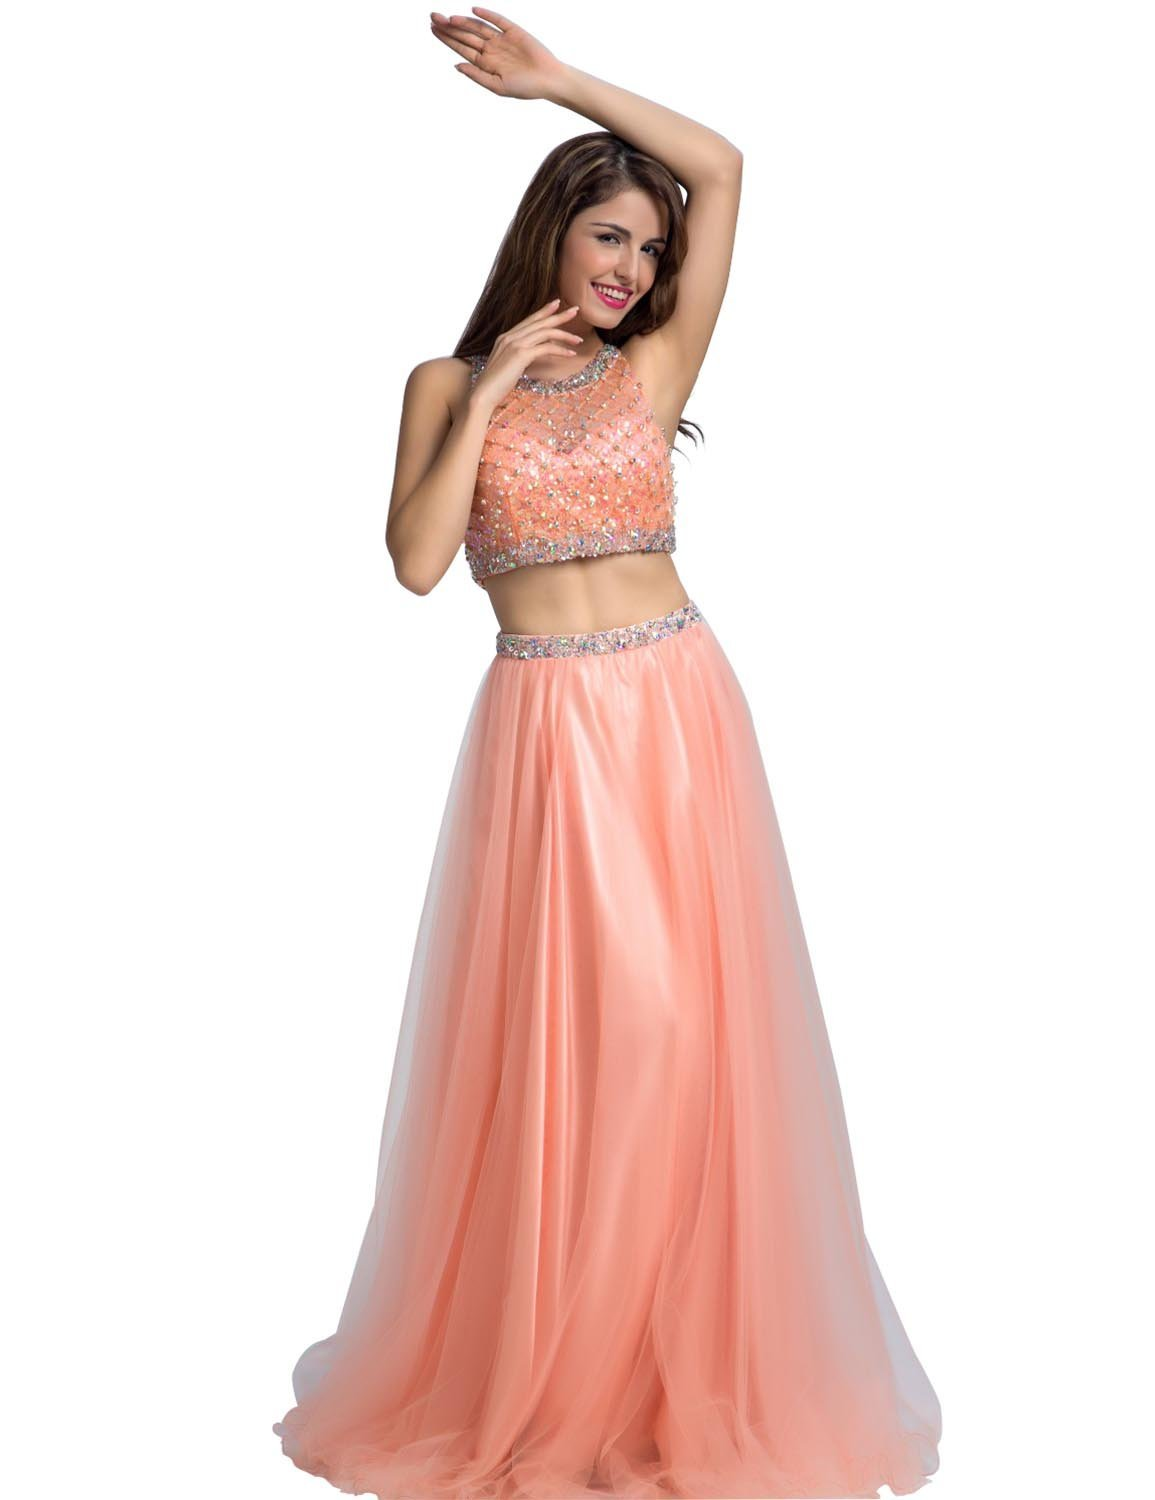 a5aad74d0e77 Clearbridal Women s Blush Tulle Prom Dress A-Line Two Piece Party ...